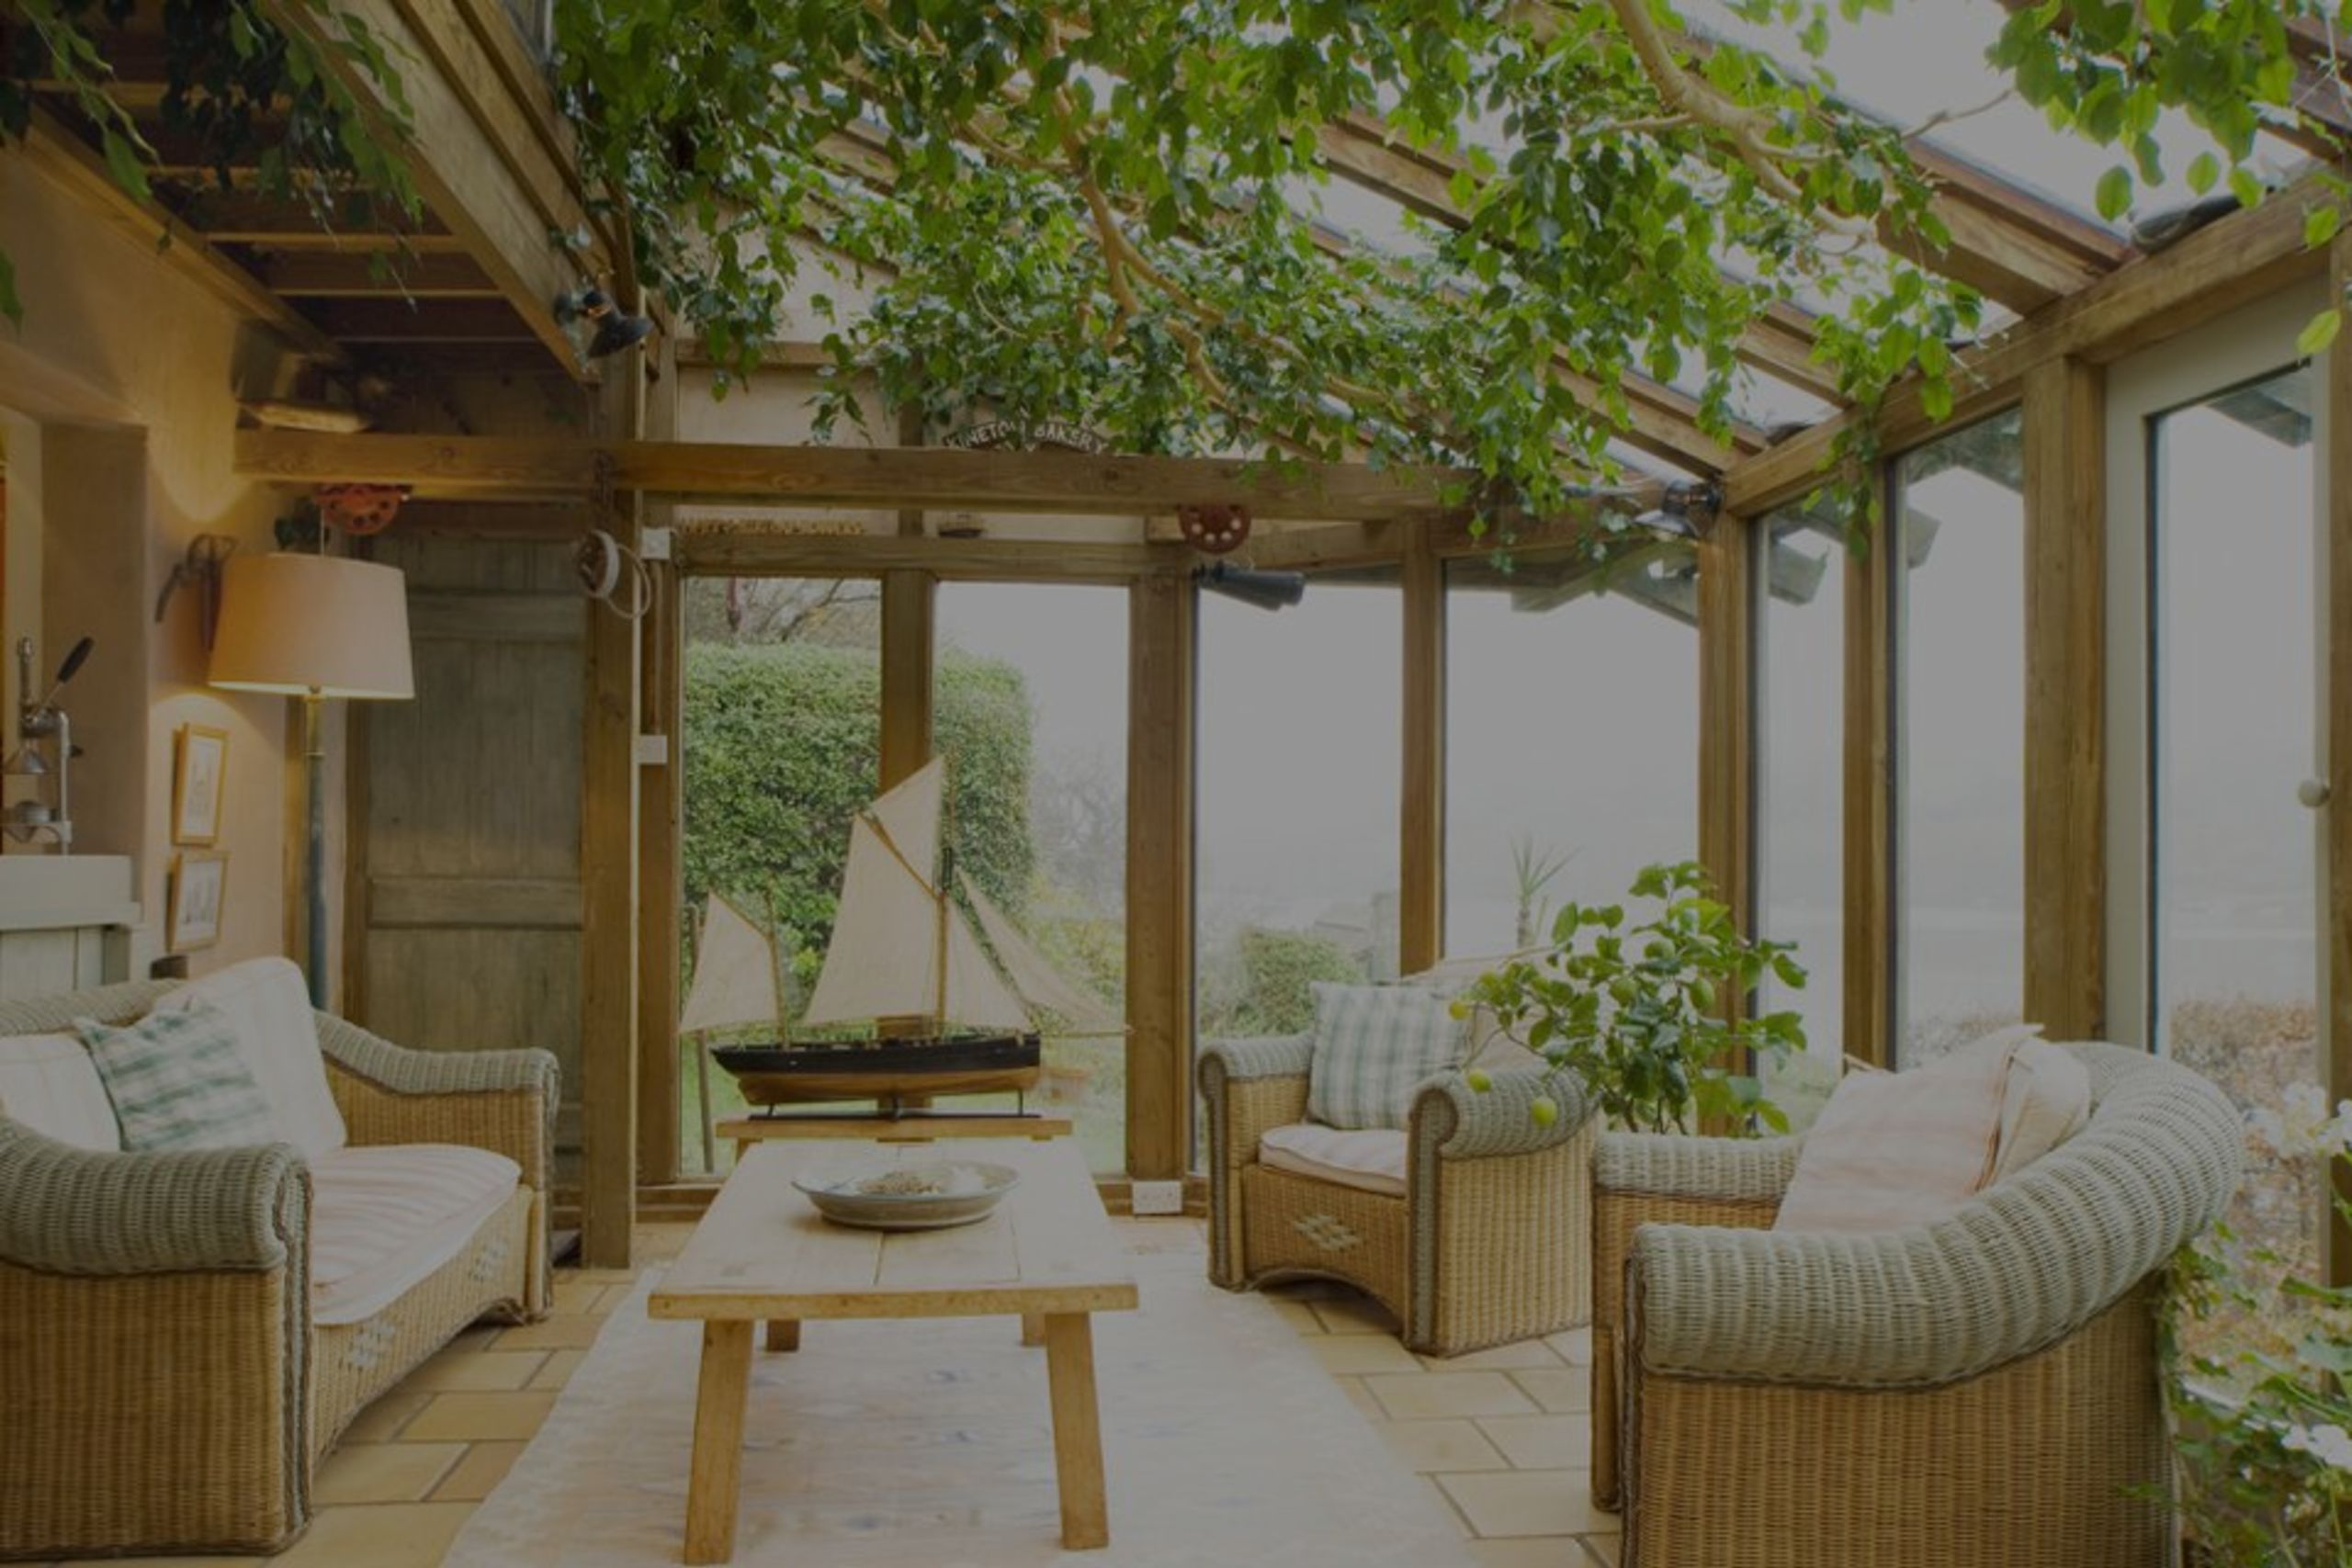 Add To Your Home With A Sunroom!